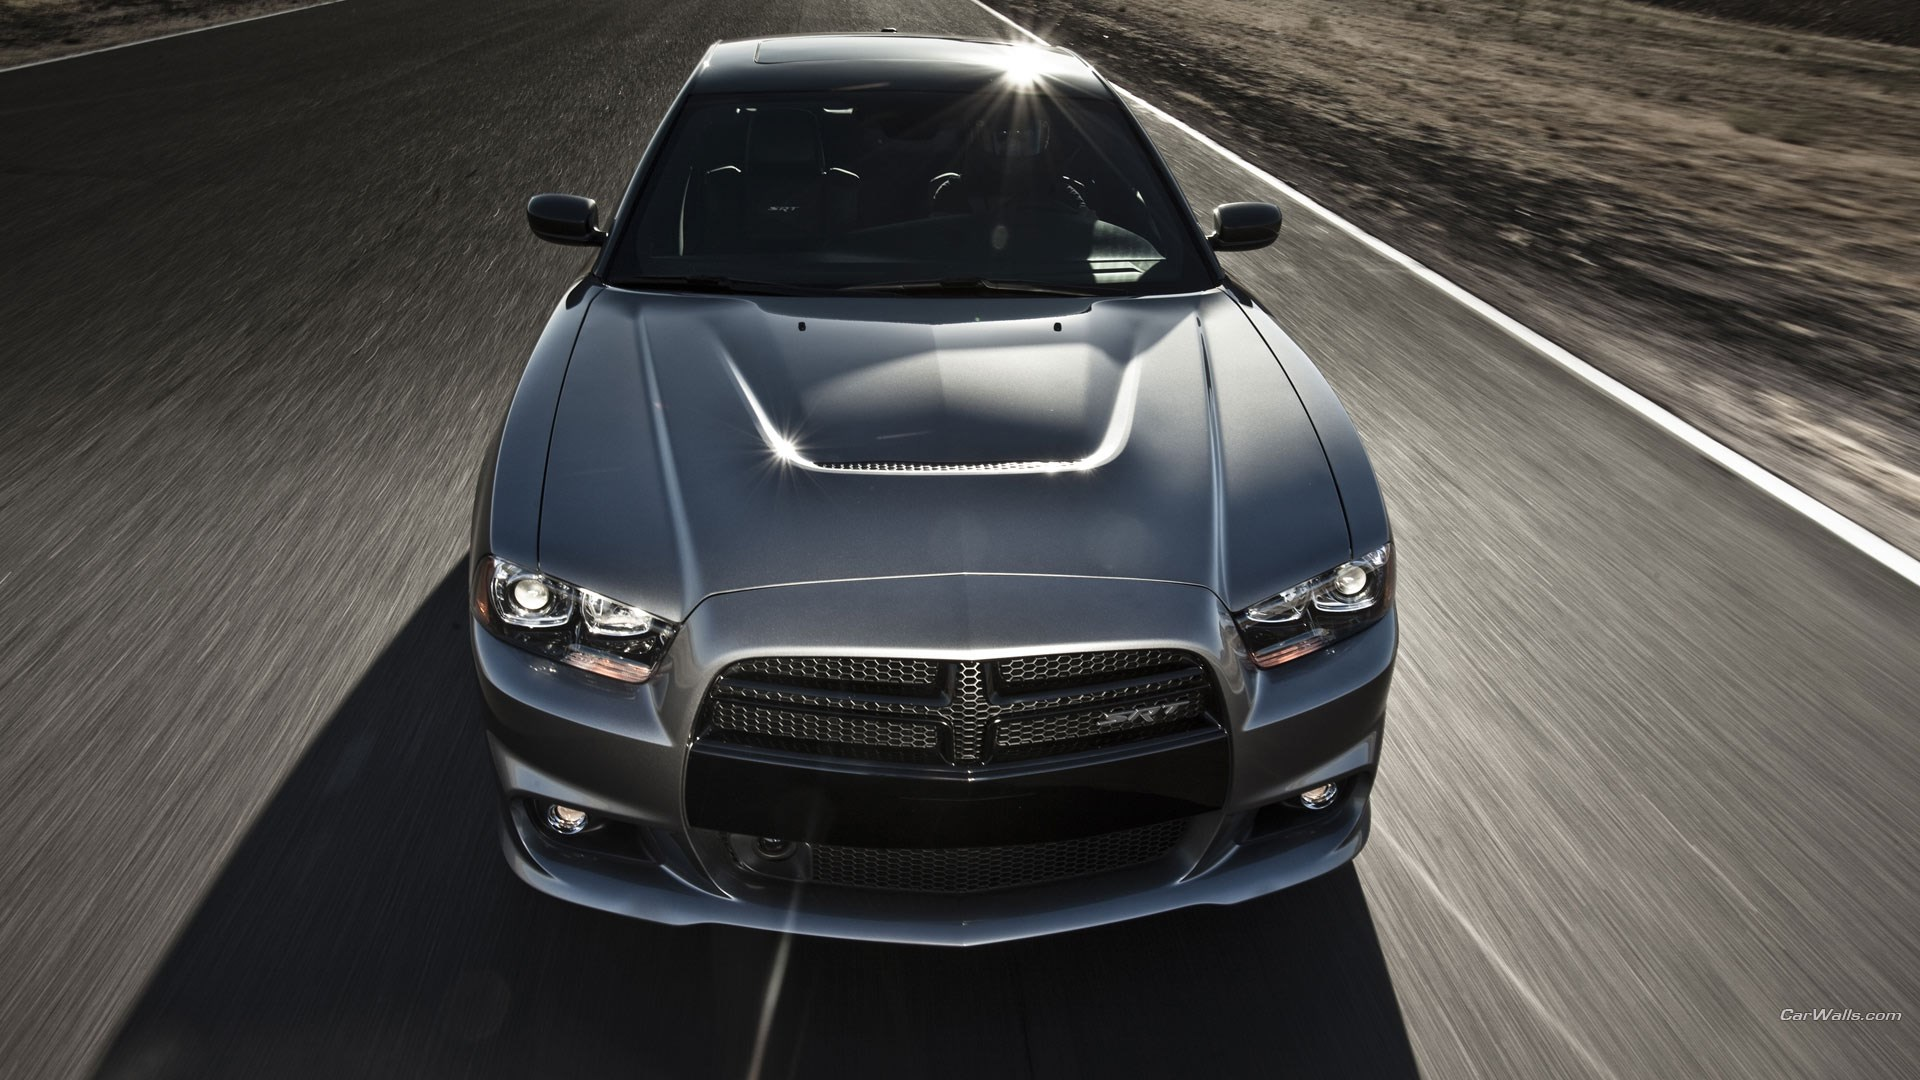 1920x1080-Free-Awesome-dodge-charger-srt-wallpaper-wpc900653